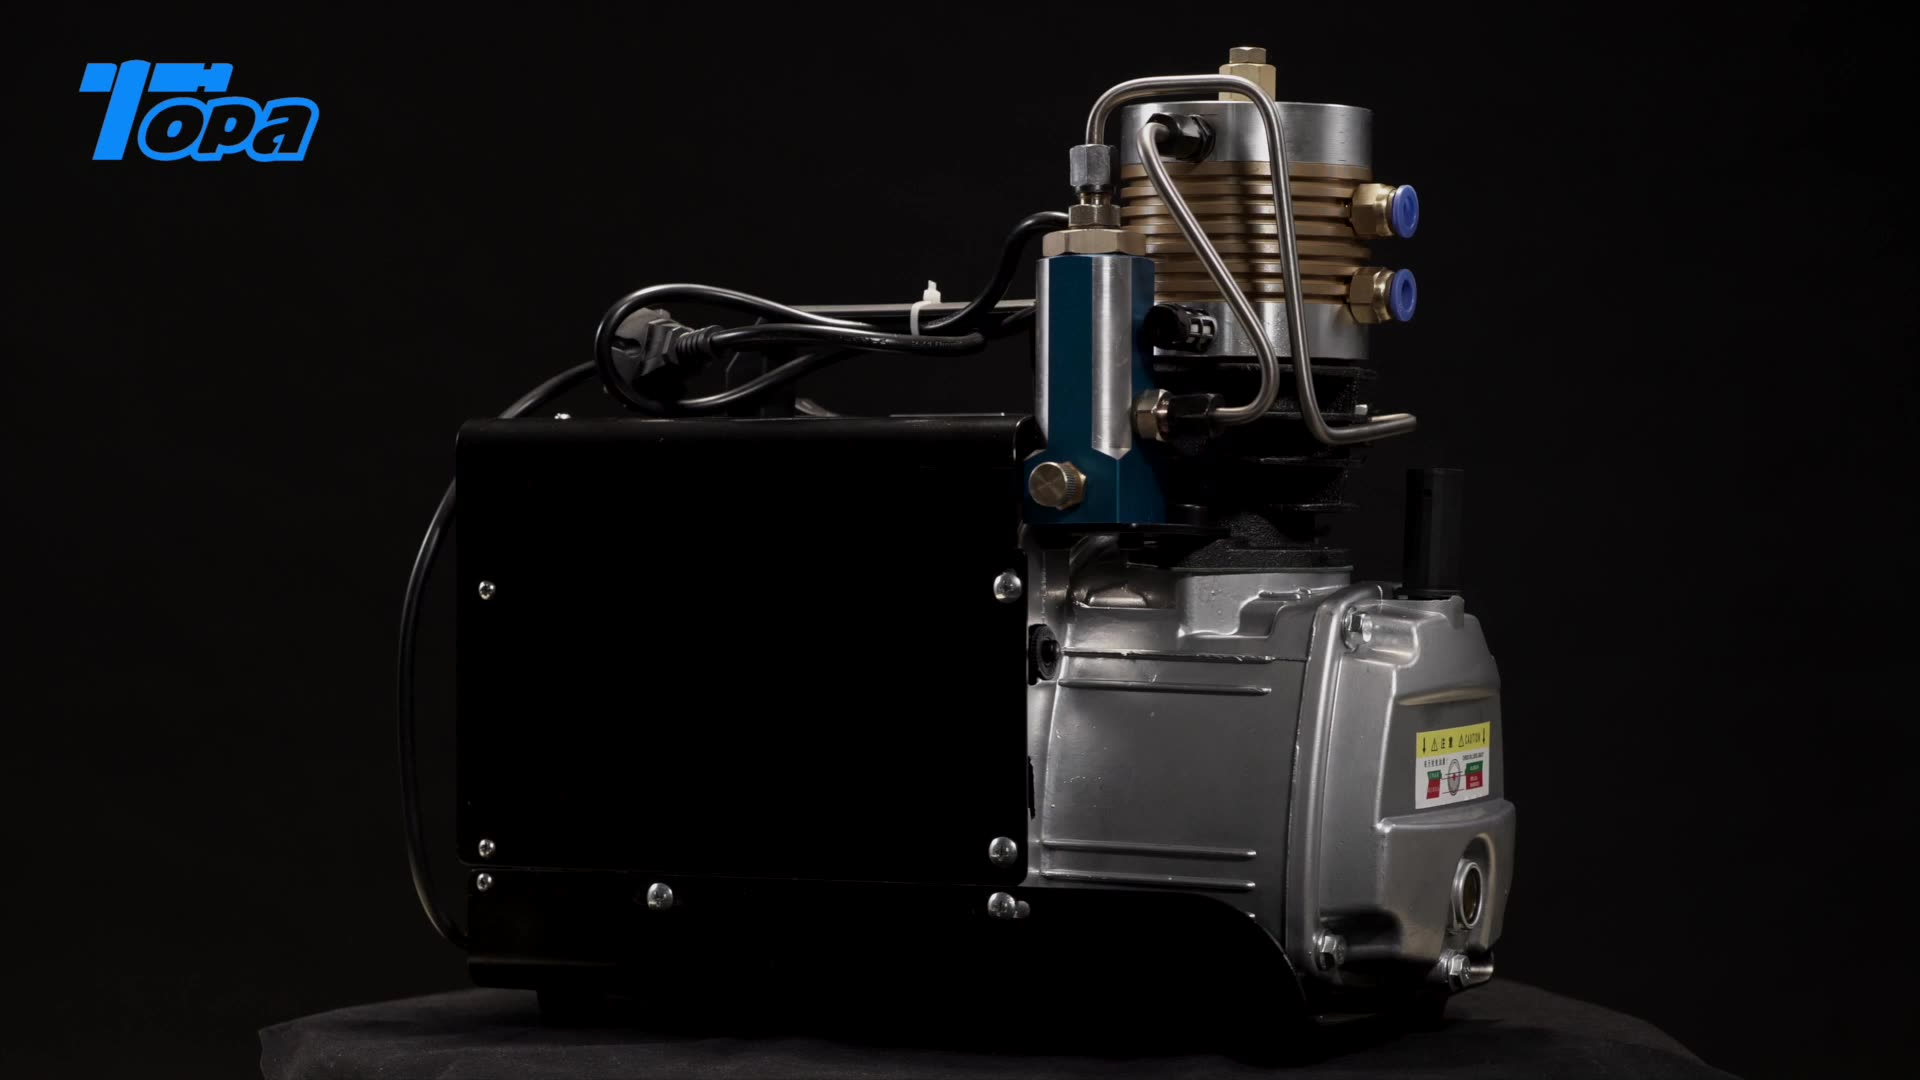 Best price 3000 psi DC made in italy air compressor pump